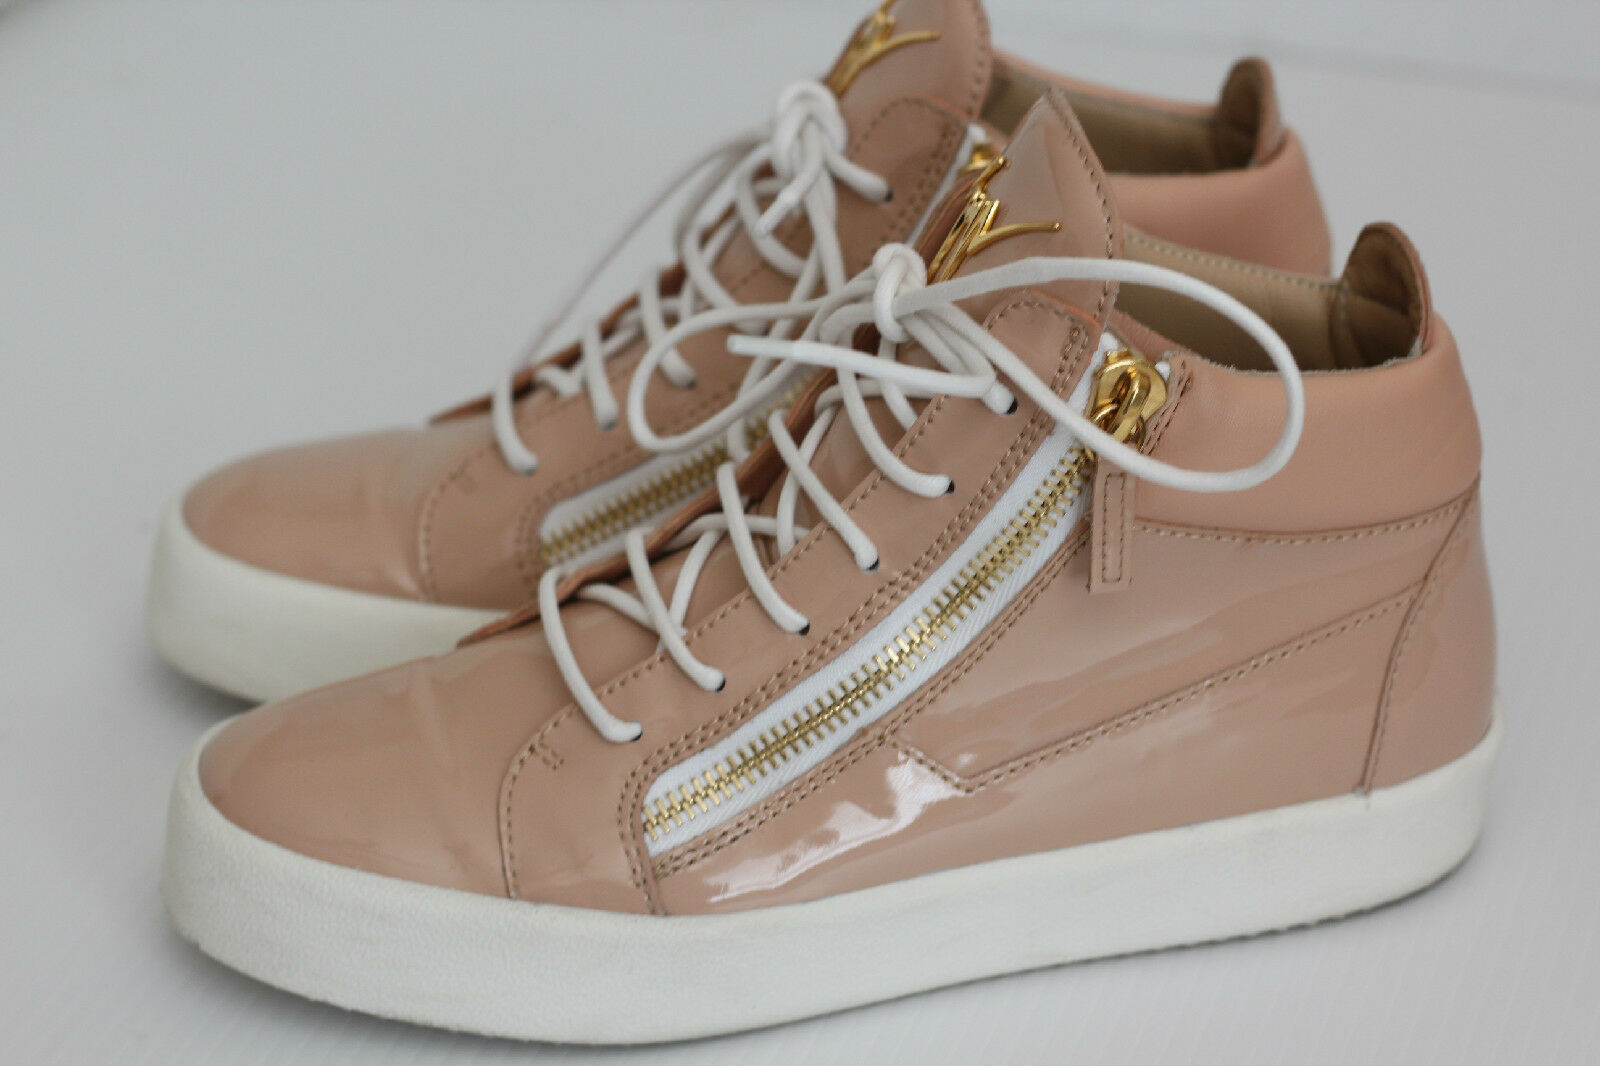 Giuseppe Zanotti May May May London High Top scarpe da ginnastica - Blush Patent Leather - 10US (X23) 1973a0